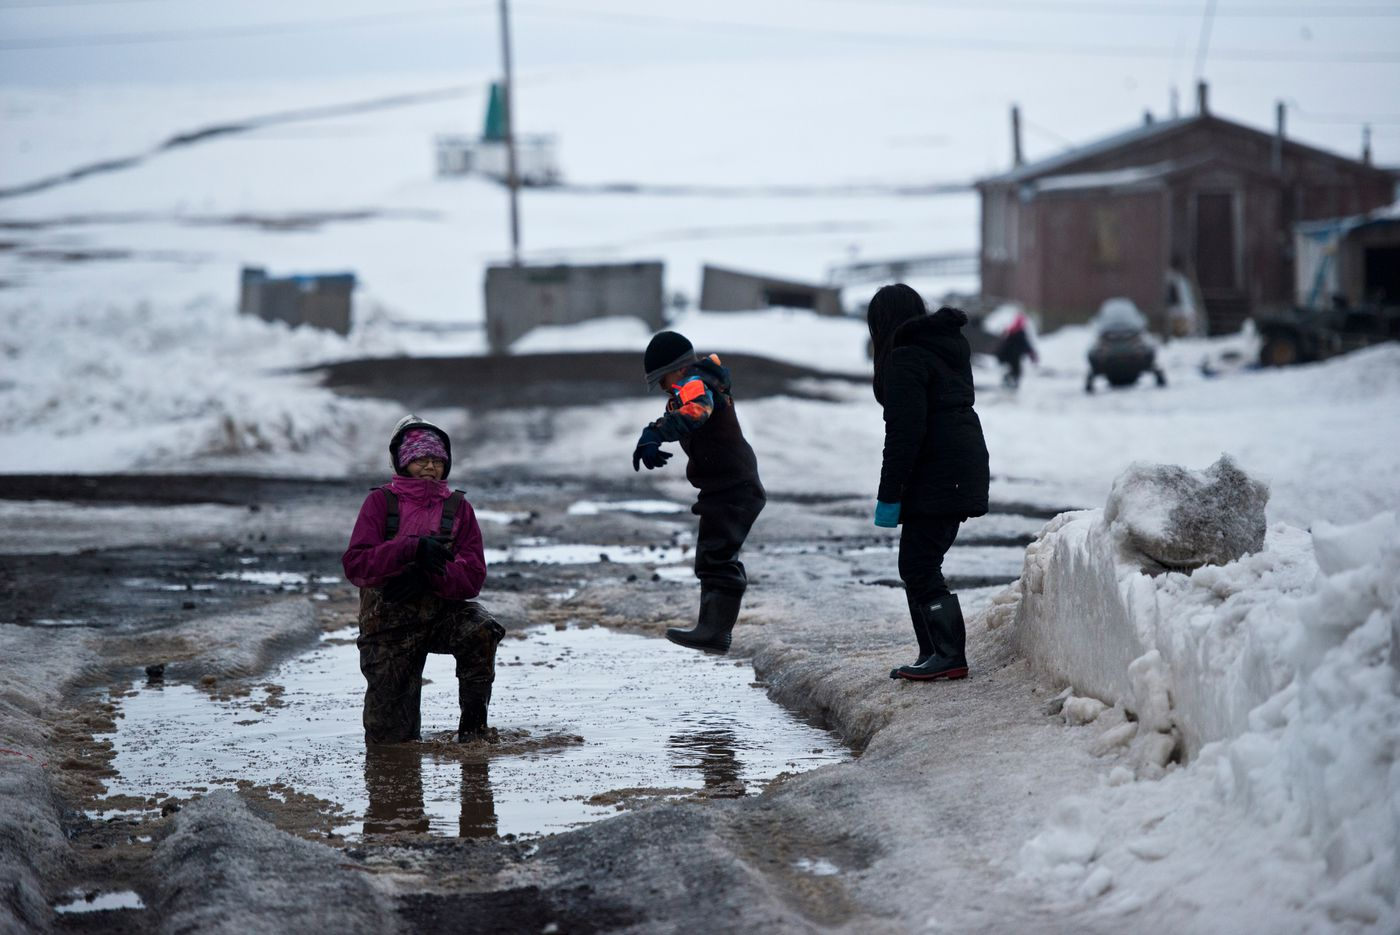 Children play in a puddle in Savoonga last month. (Marc Lester / Alaska Dispatch News)